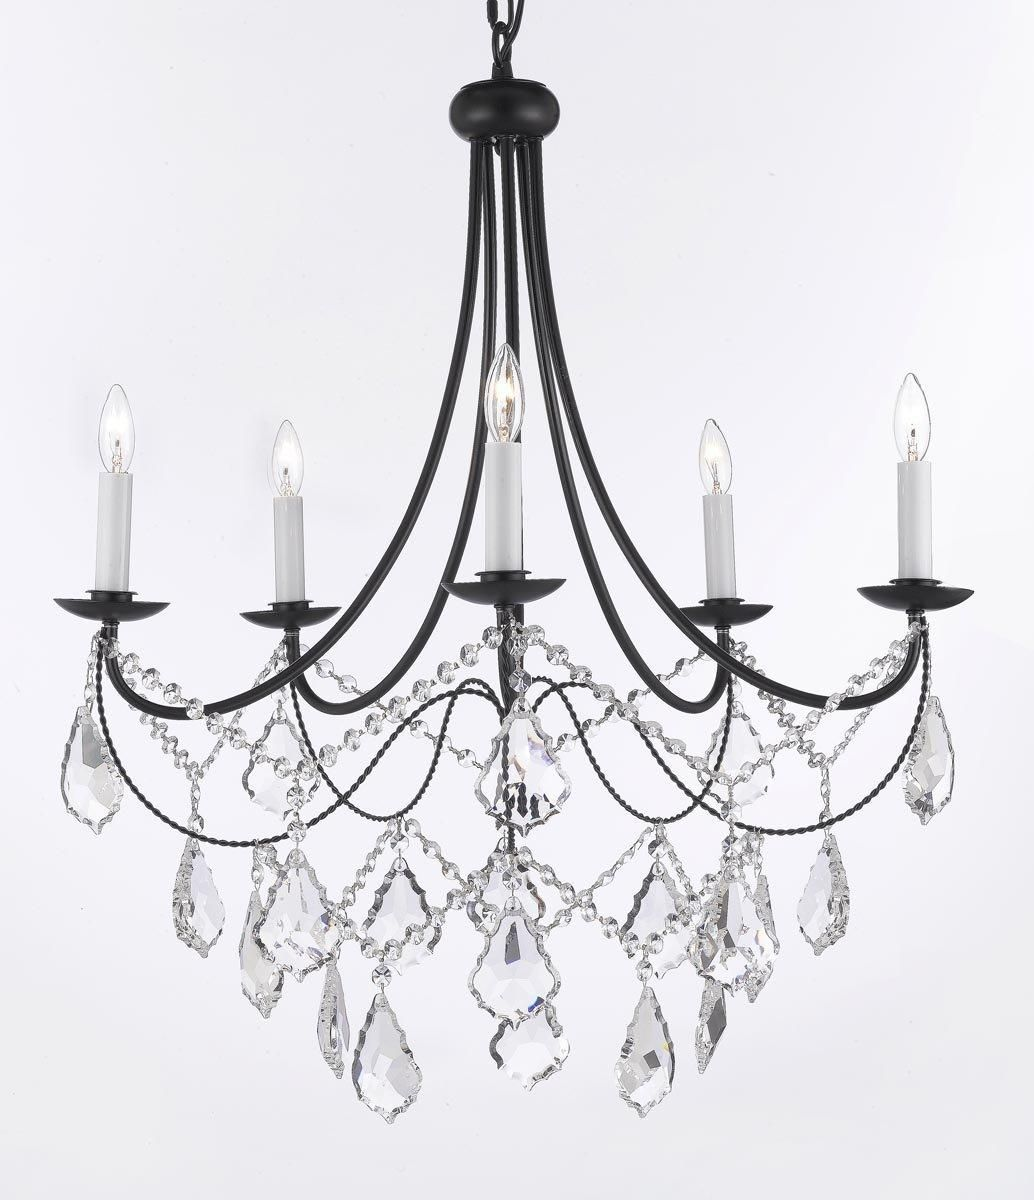 Empress Crystal Tm Wrought Iron Chandelier Chandeliers Lighting H 22 5 X W